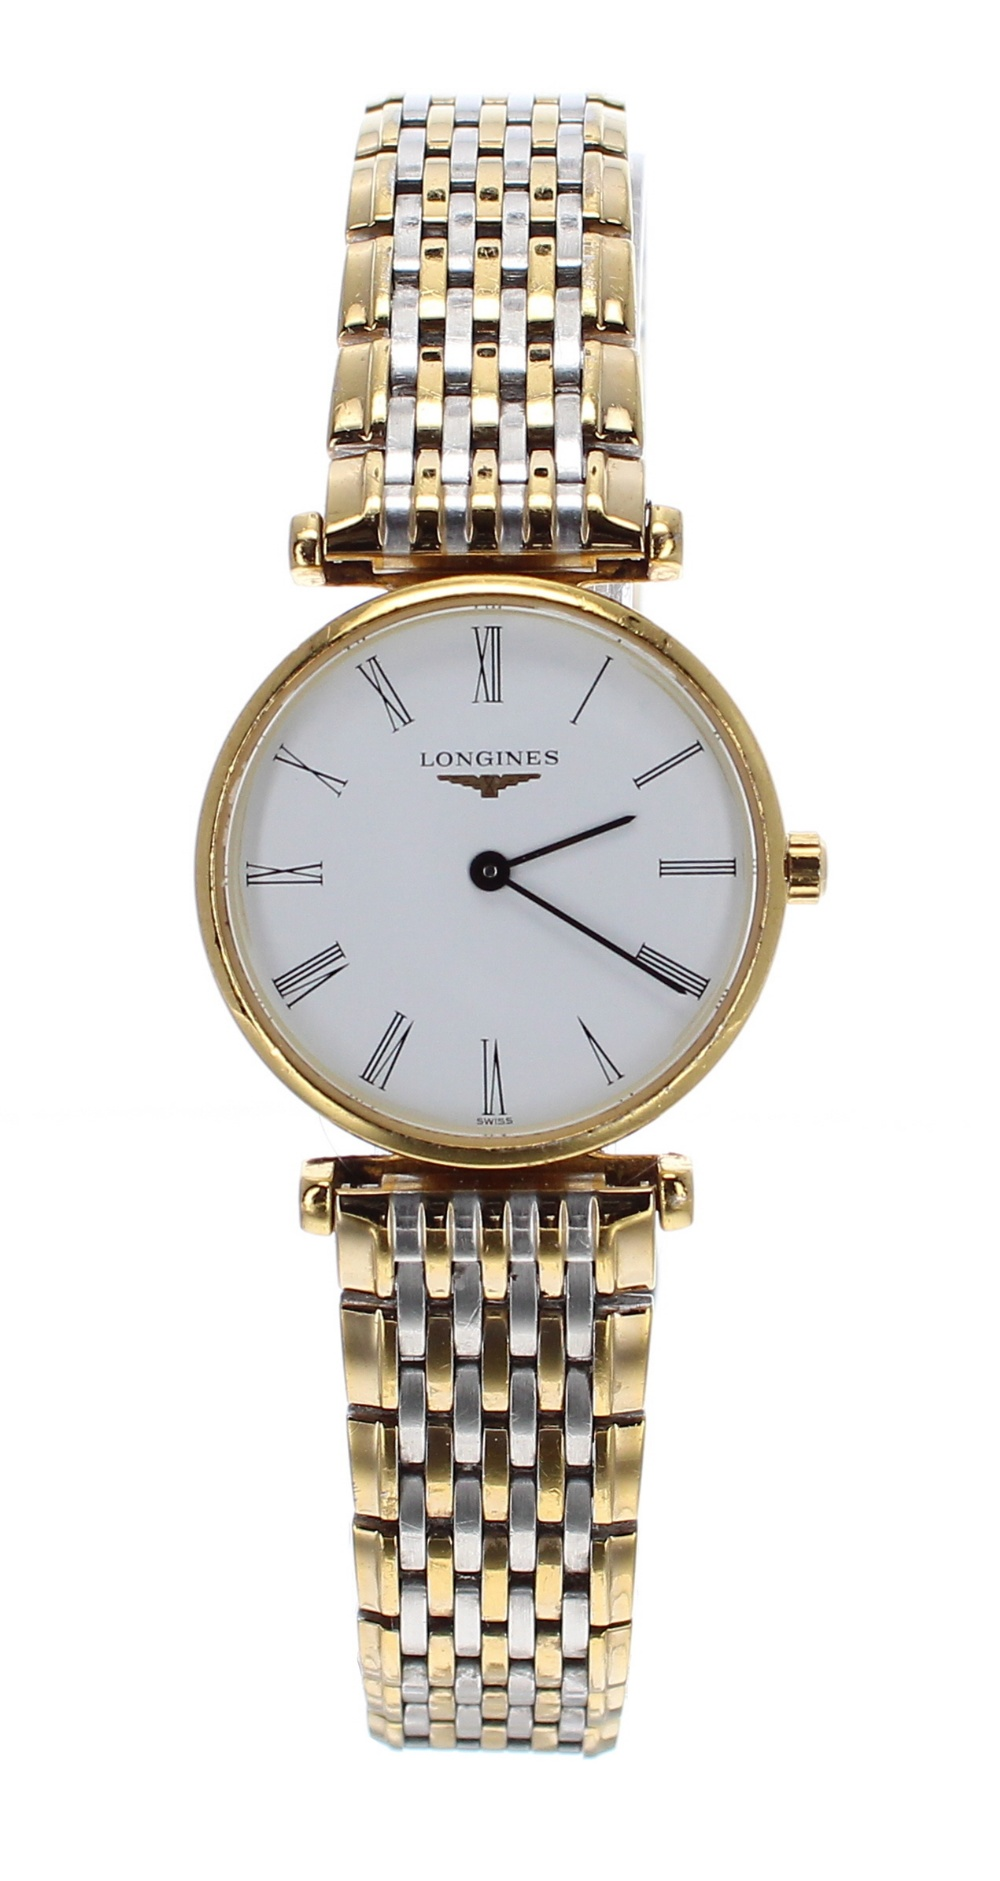 Lot 47 - Longines La Grande Classique bicolour lady's bracelet watch, ref. L4 209 2, circular white dial,